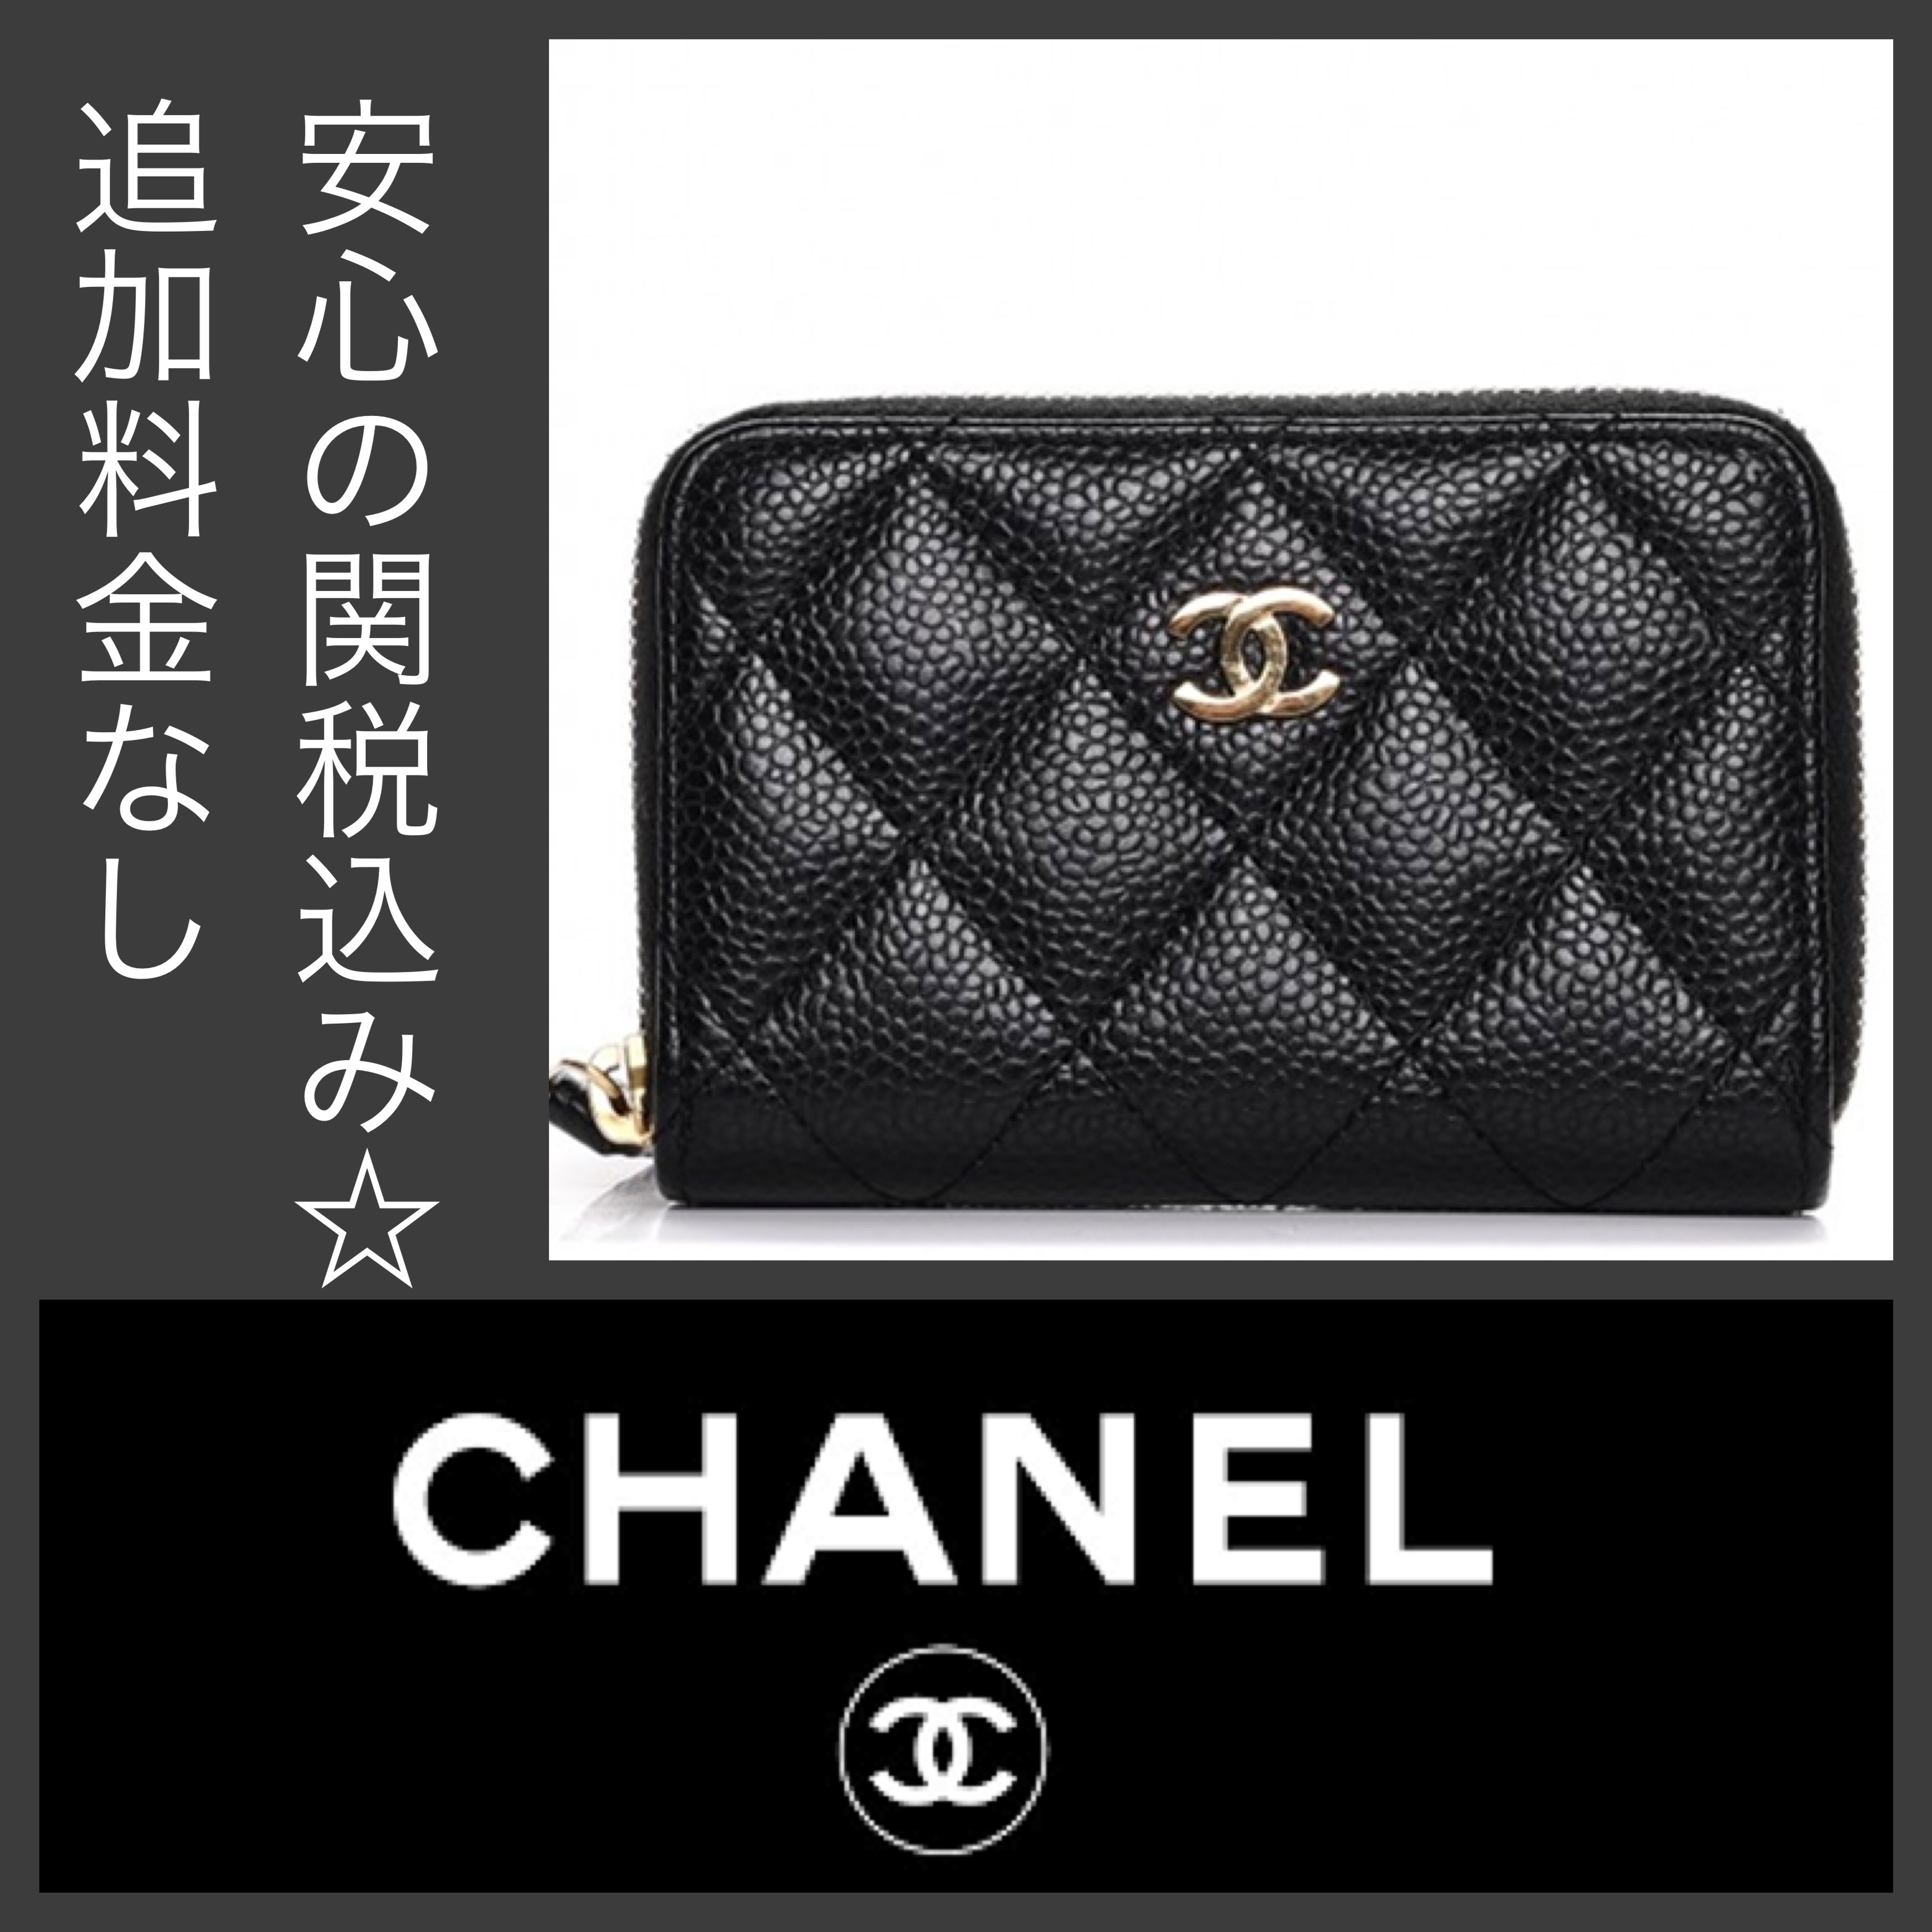 Chanel Zip Coin Purse Quilted Caviar Gold-tone Black (CHANEL/コインケース・小銭入れ) 68223528